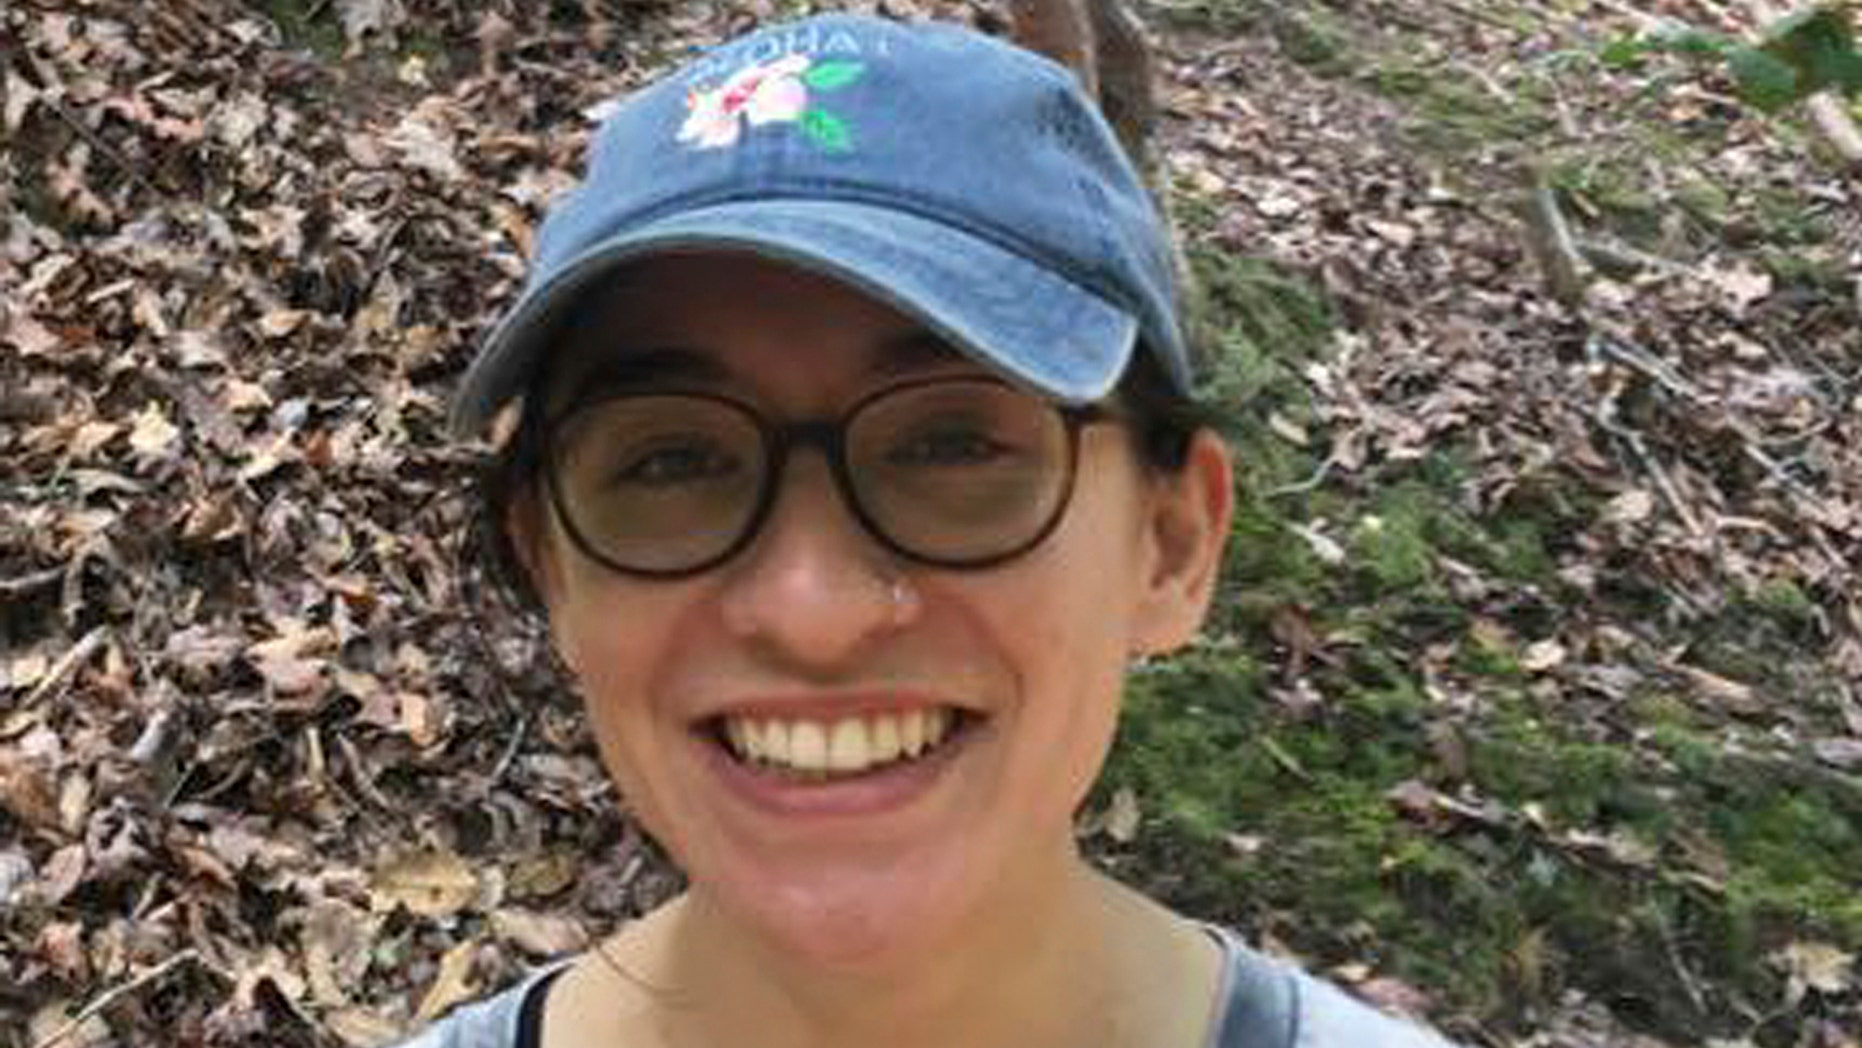 Lara Alqasem, a 22-year-old American graduate student with Palestinian grandparents, was barred from entering Israel and ordered deported, based on suspicions that she supports the BDS boycott movement. (Alqasem family via AP)